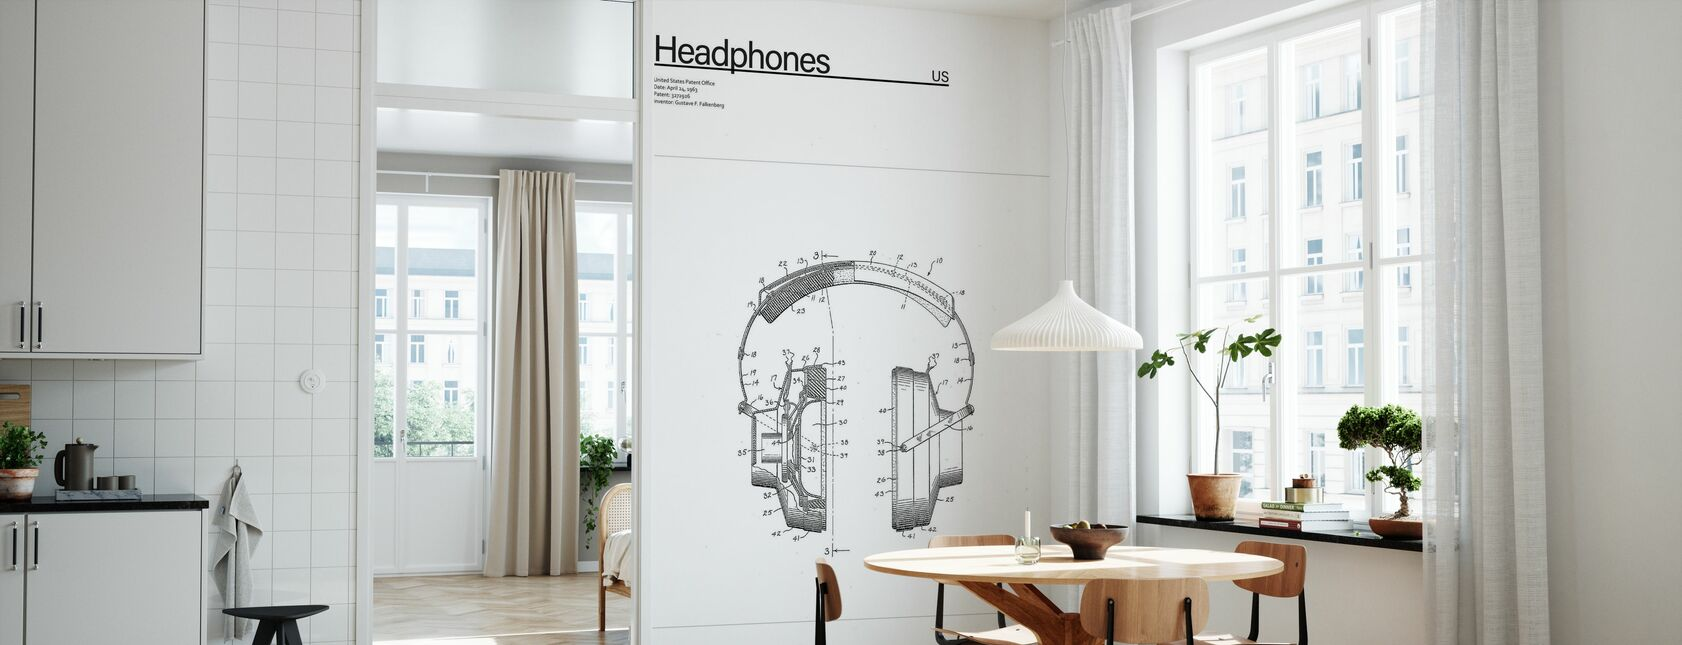 Patent Headpones - Wallpaper - Kitchen